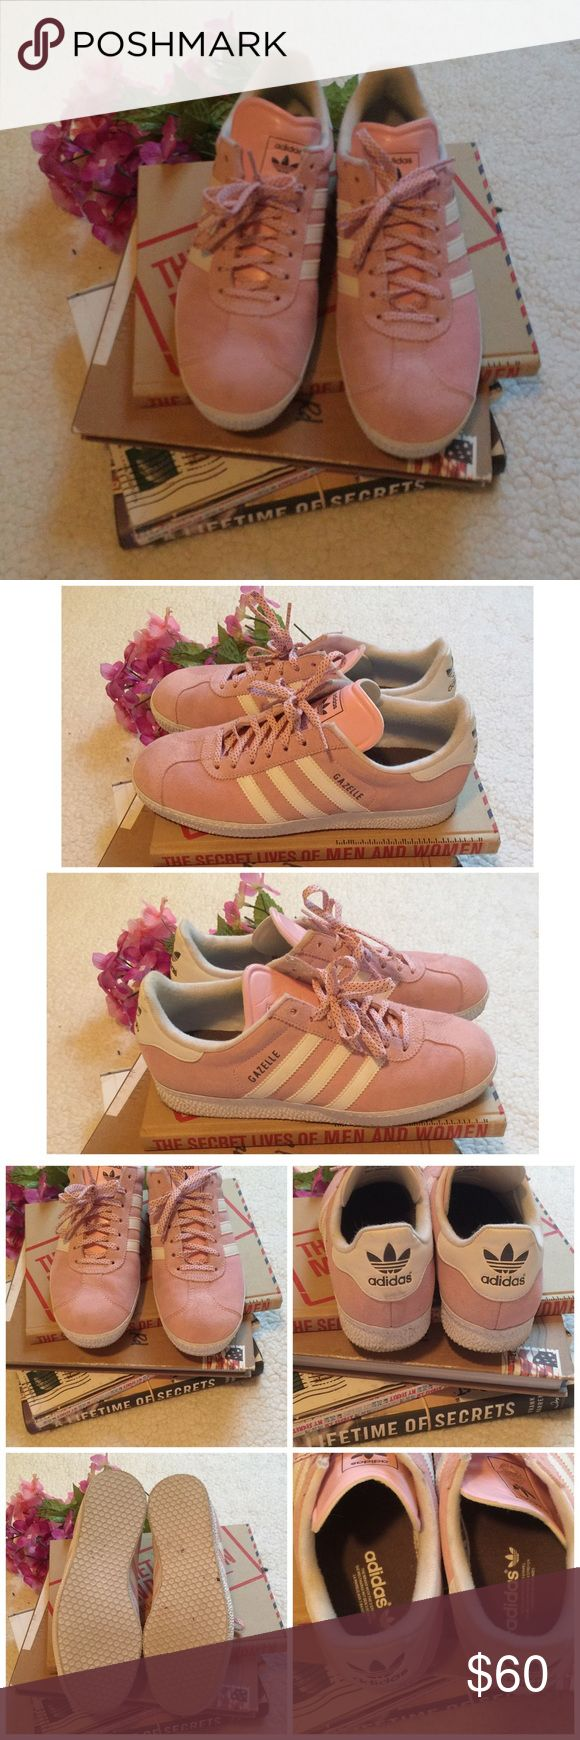 Pink Adidas Gazelles Pink Gazelles-worn once. Amazing condition and a soft pink color. Size says 7 but would also fit 7.5. Comfortable sneaker is perfect for a night out or a fun weekend trip.  There are a couple spots on the suede that have darker spots (they wouldn't show up in the picture because they are slight). Adidas Shoes Sneakers